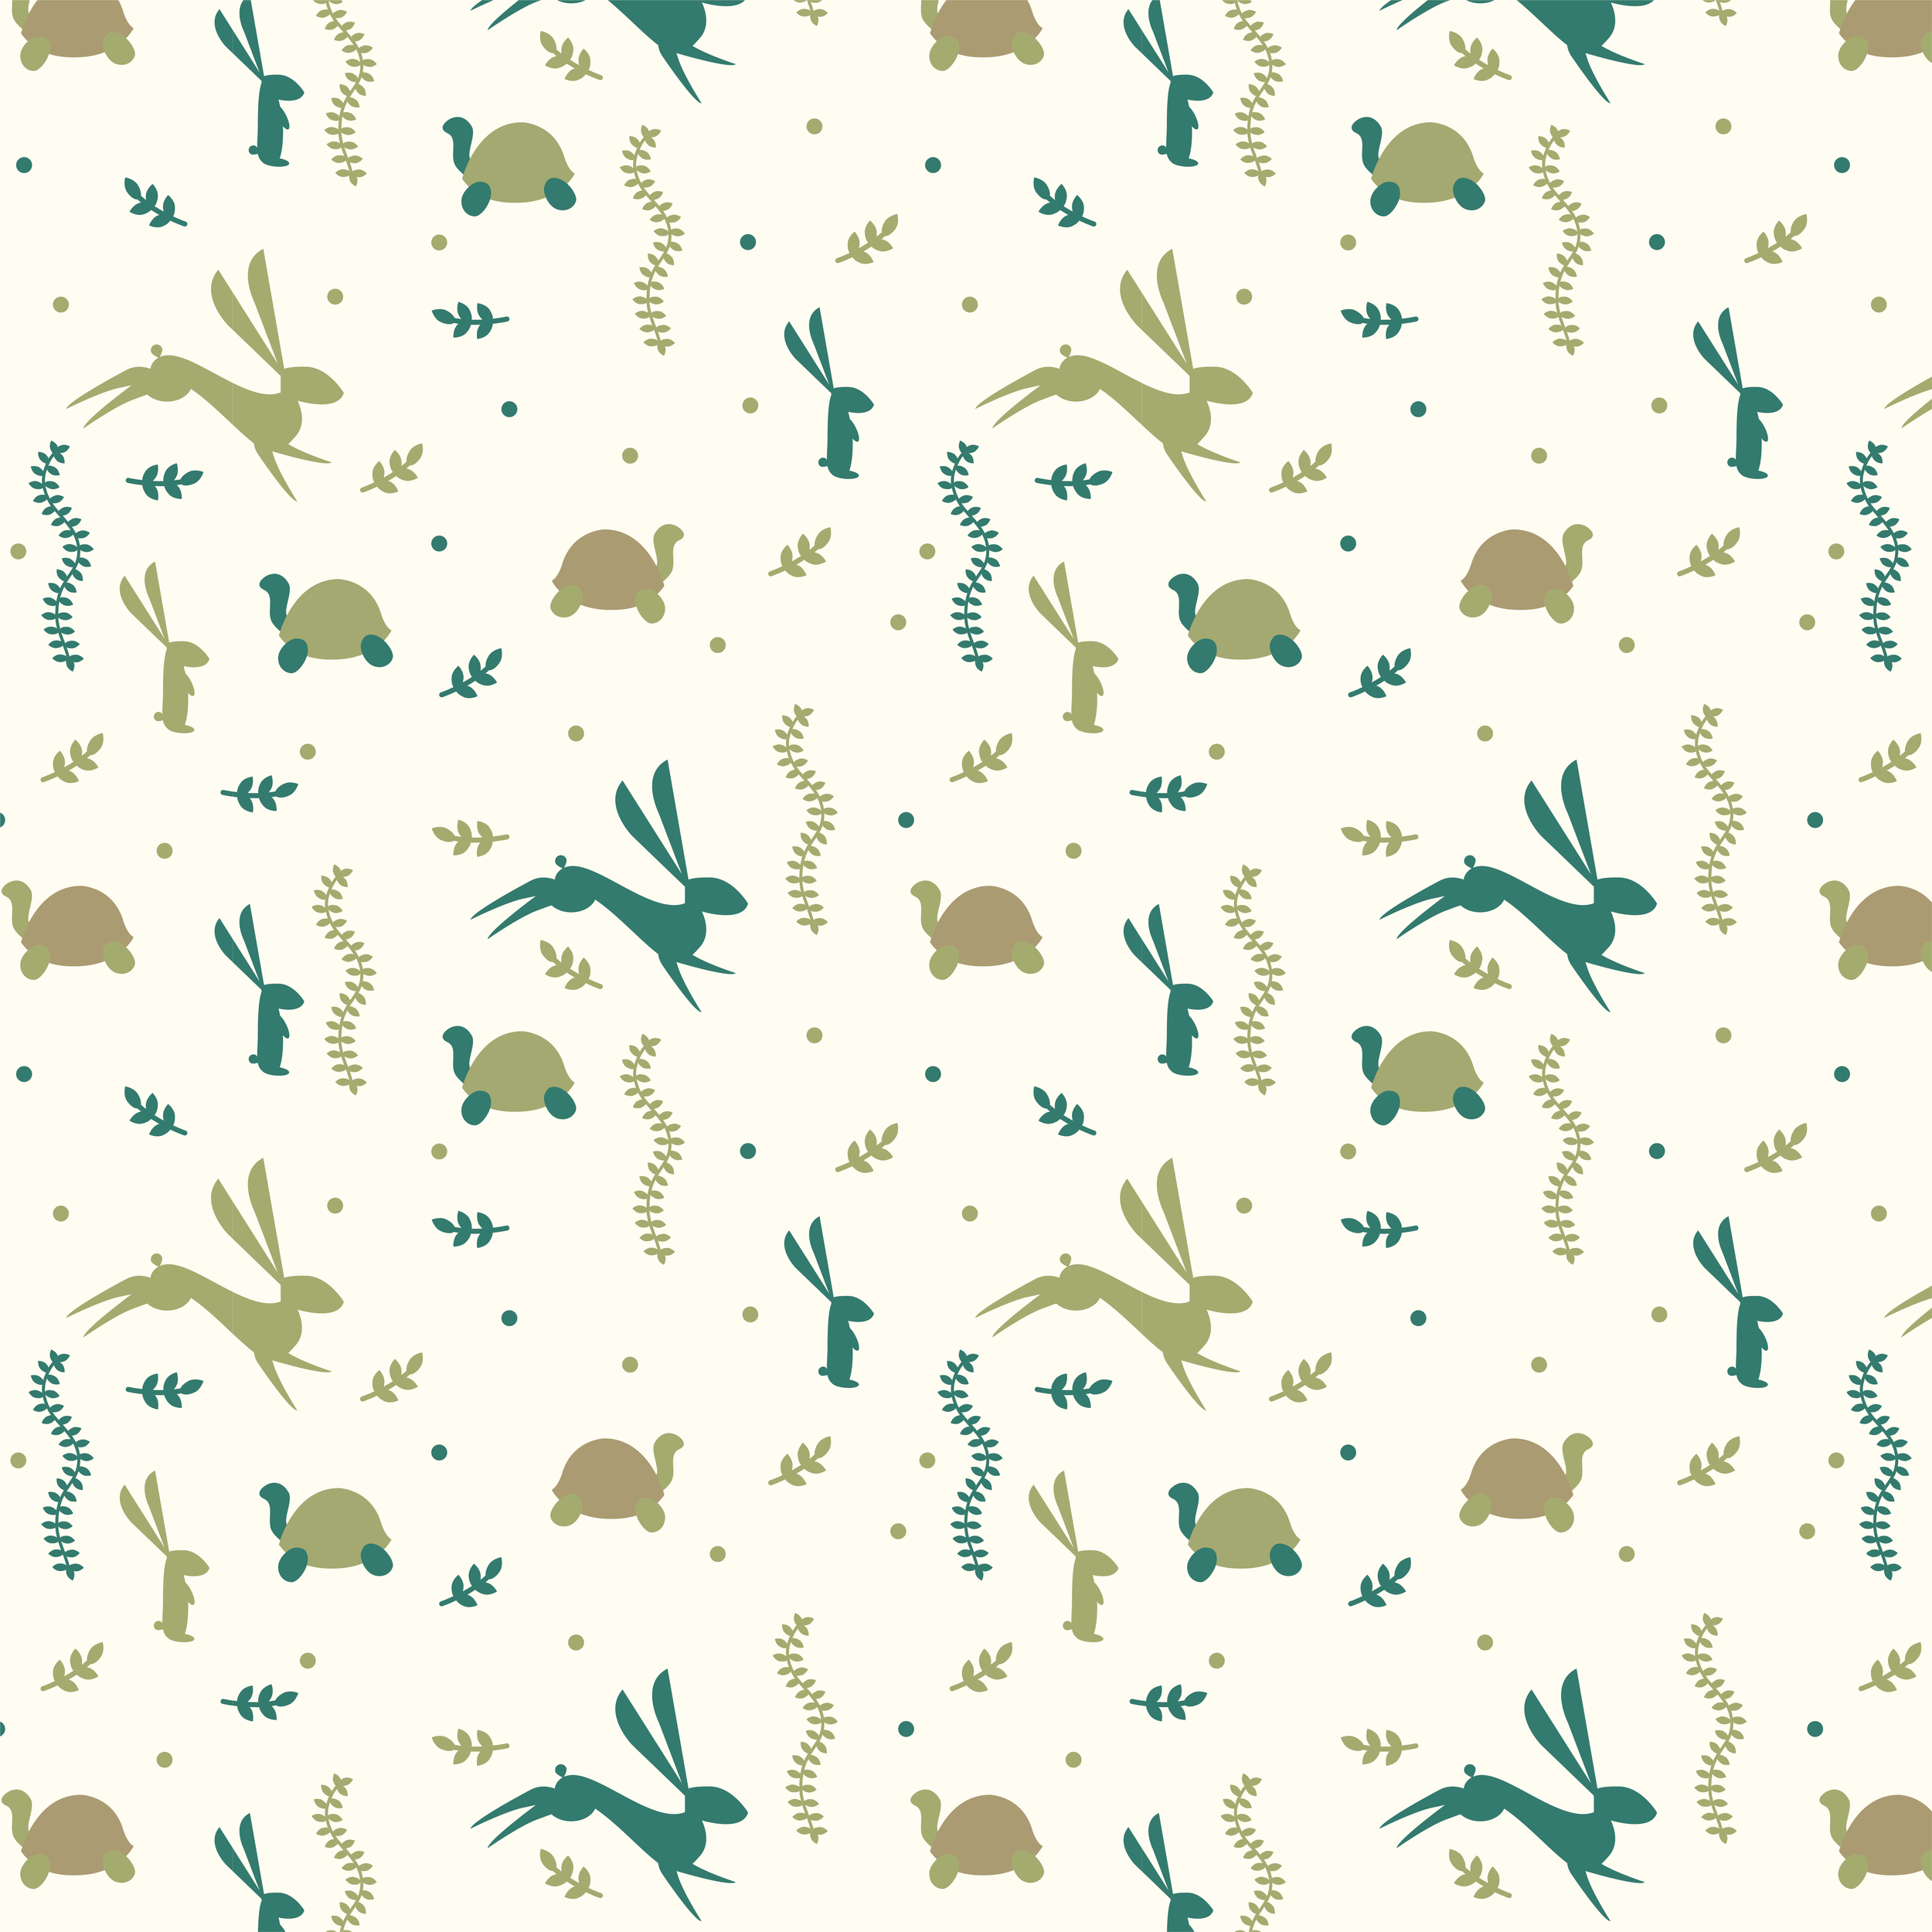 Tortoise & Hare-02.png